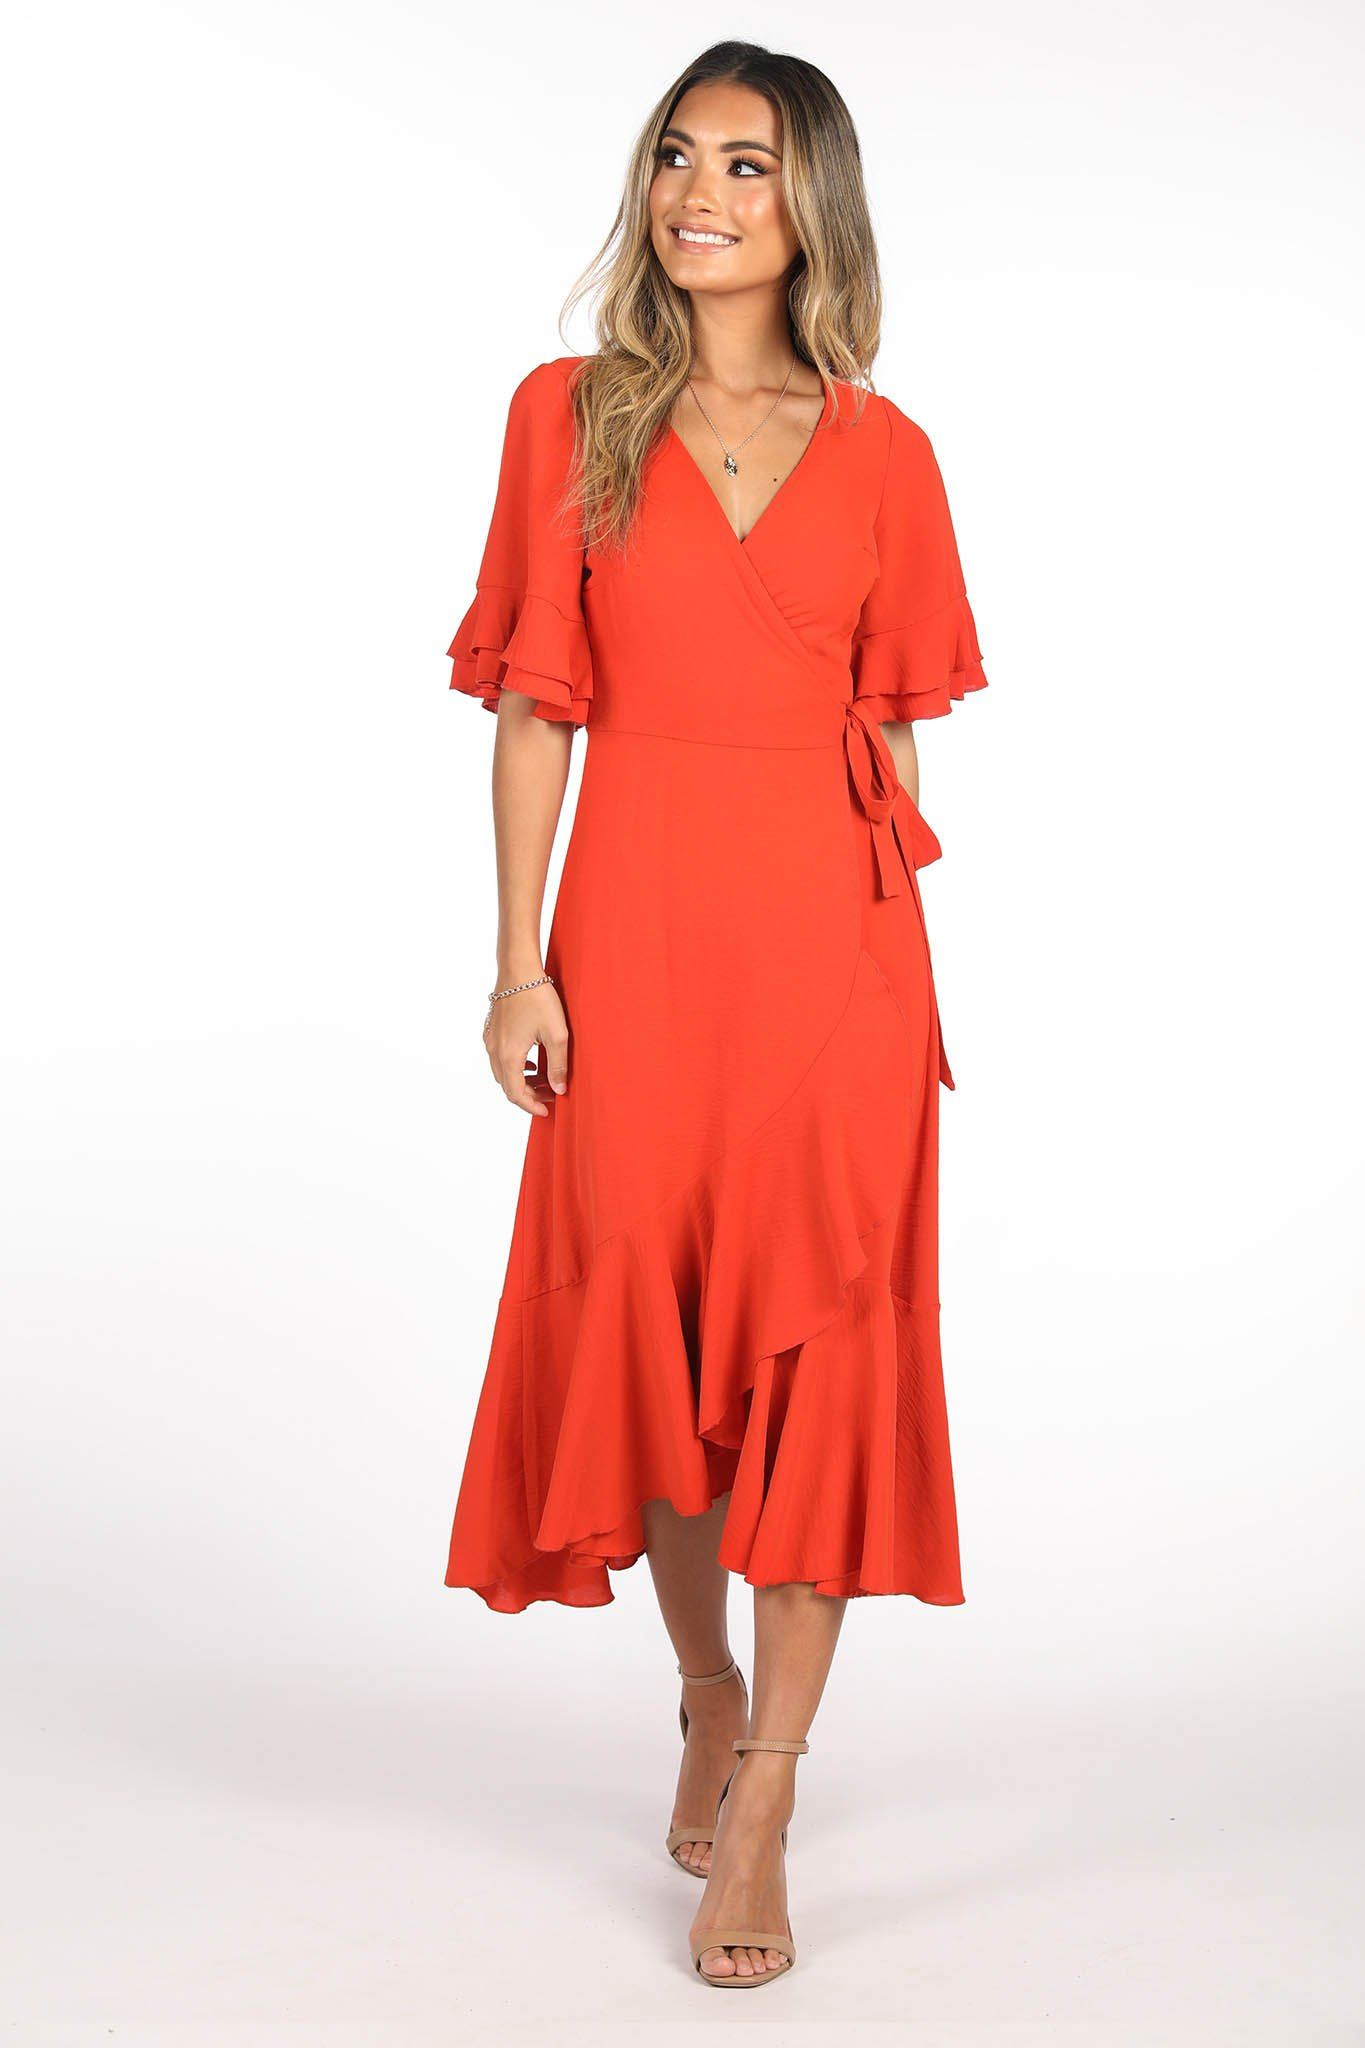 Bright Red Wrap Midi Dress with V Neckline and Frill Trimming at the Sleeves and Hemlines